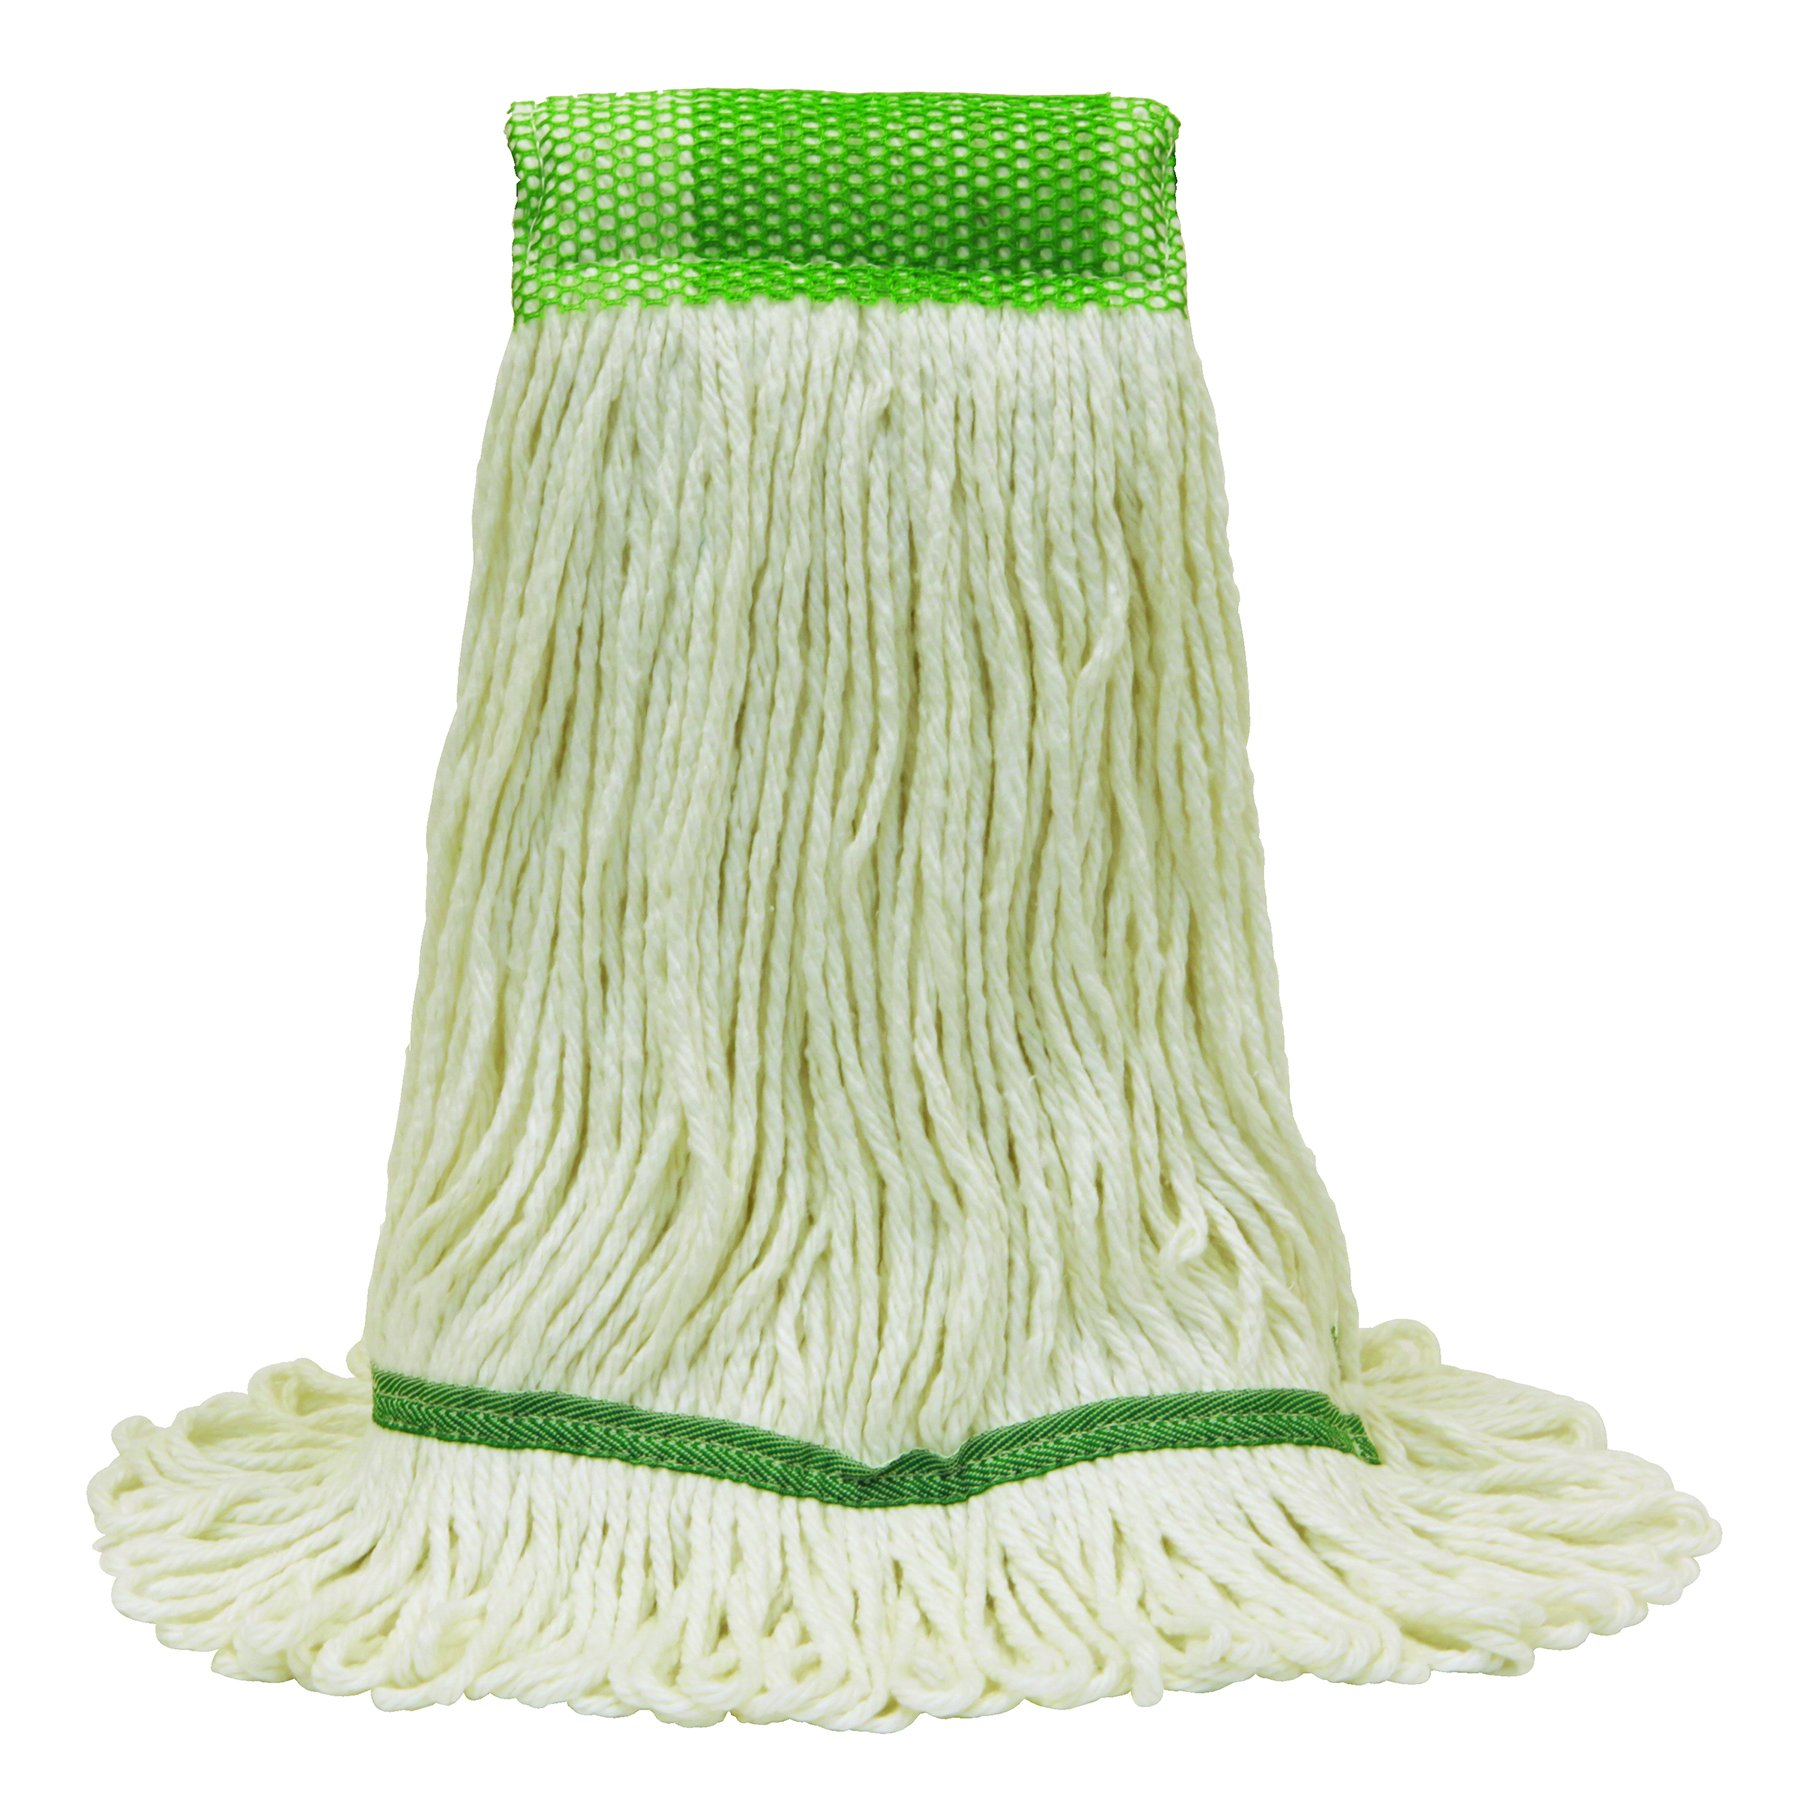 O'Cedar Commercial 97213 Healthi-Pro Anti-Microbial Mop, Large, White (Pack of 6)